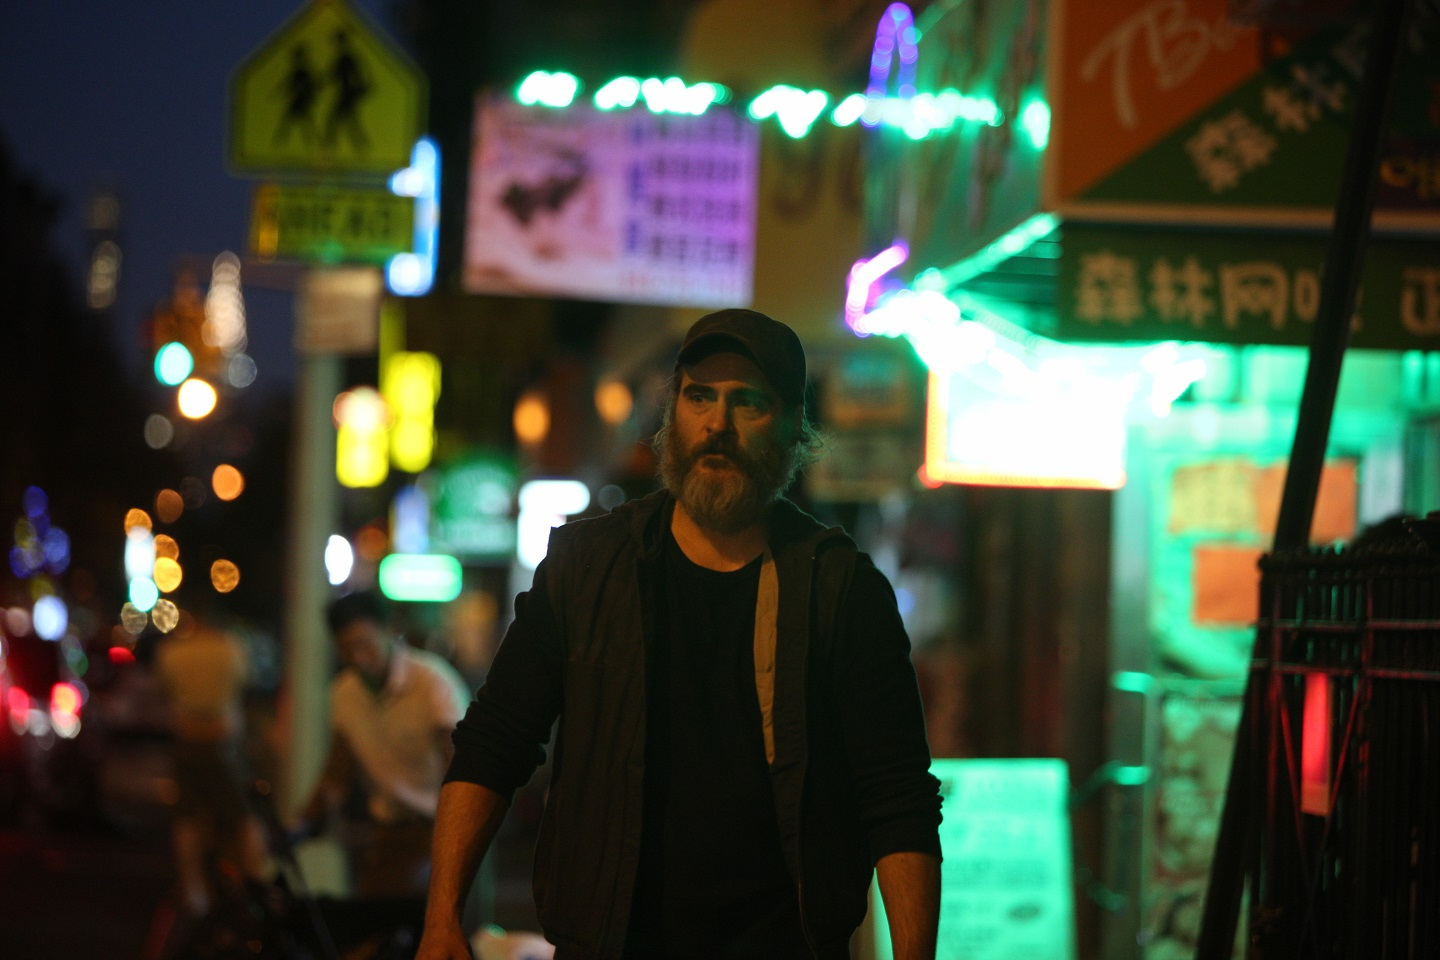 Joaquin Phoenix in You Were Never Really There